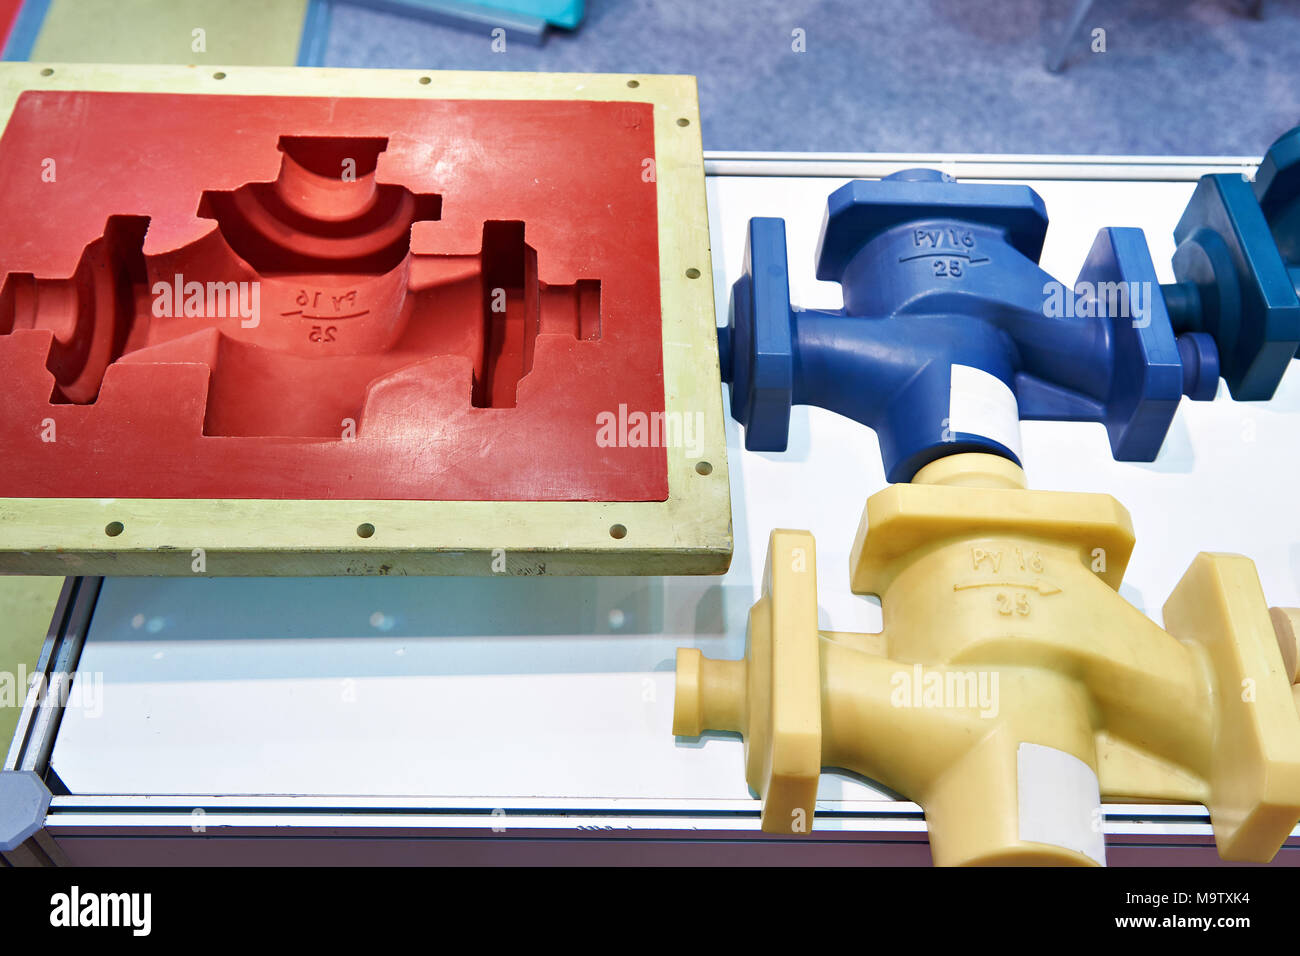 Molds for casting and plastic products - Stock Image